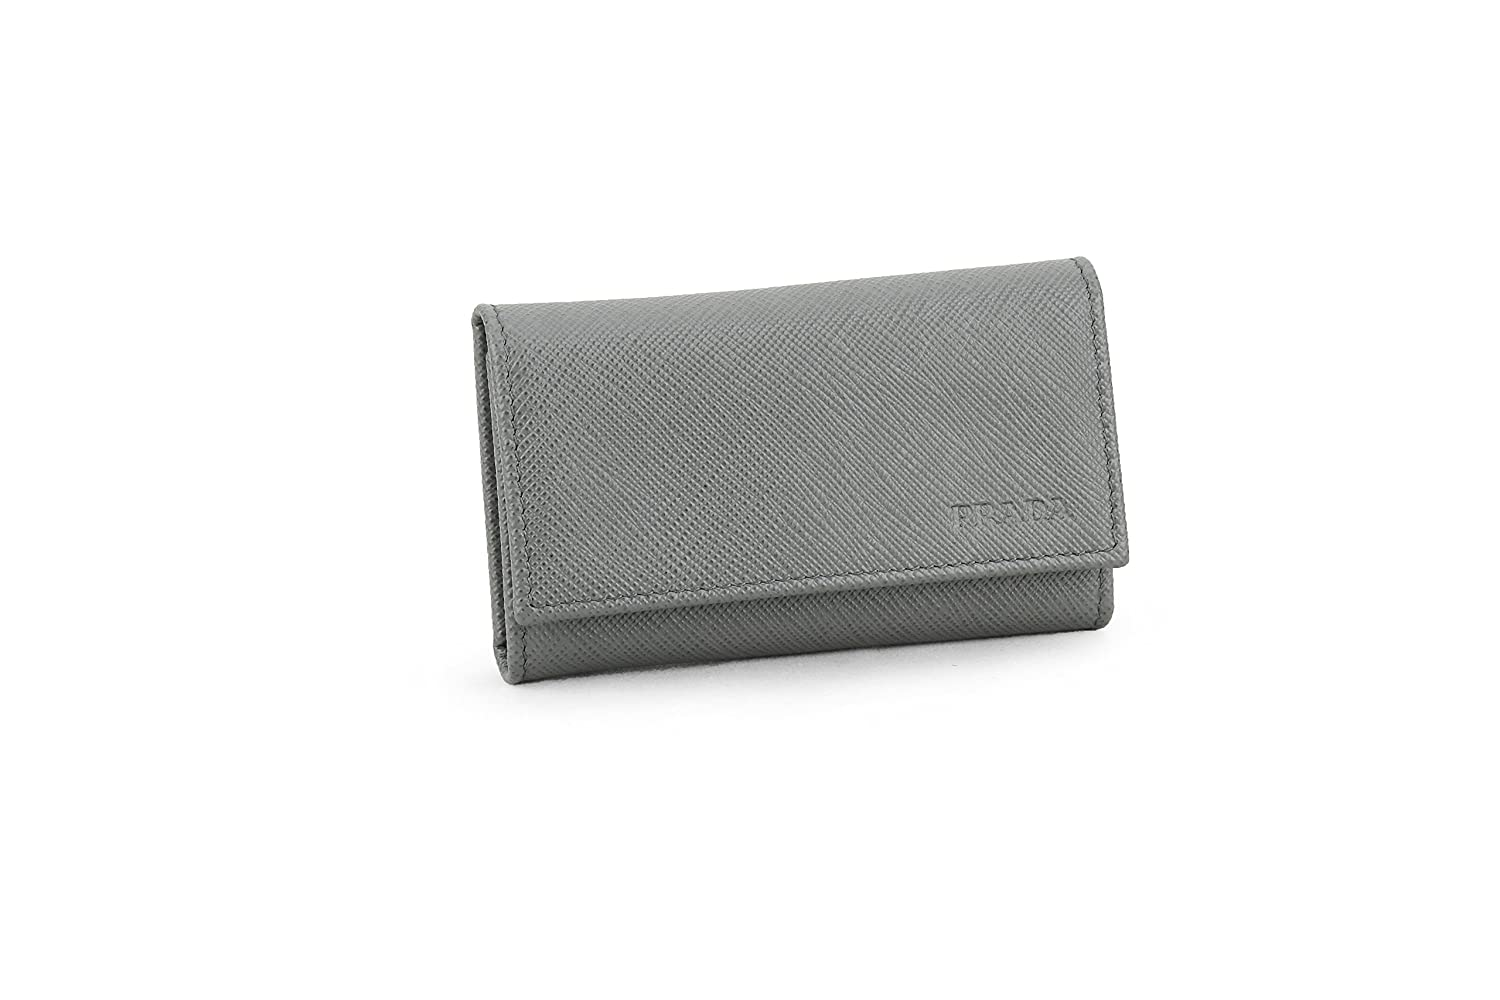 a7506a7e79b644 Prada Saffiano Leather Key Holder Wallet, Mercurio (Grey) at Amazon Women's  Clothing store: